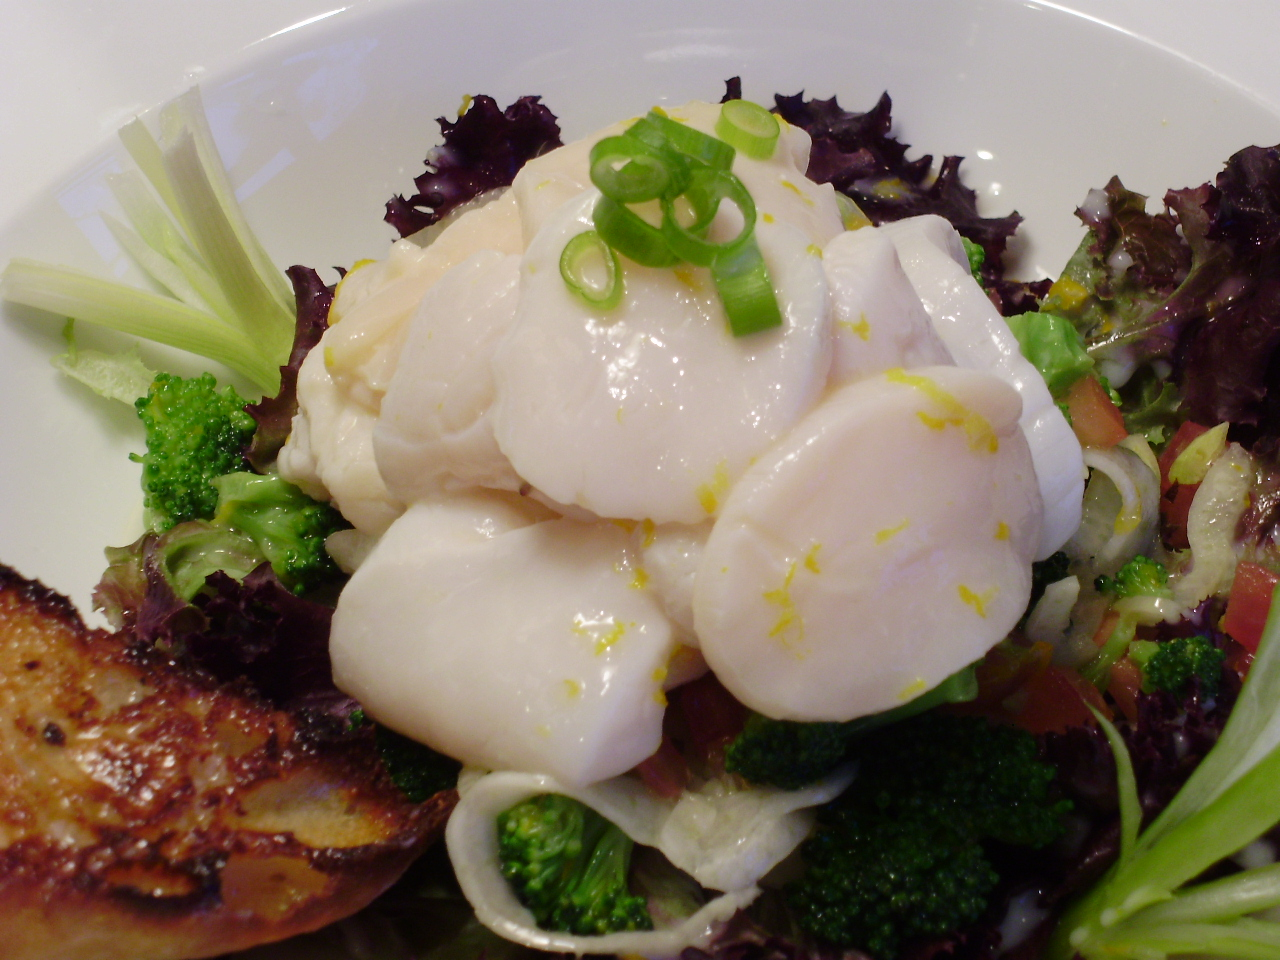 Scallop Ceveche with Fennel and Broccoli Salad